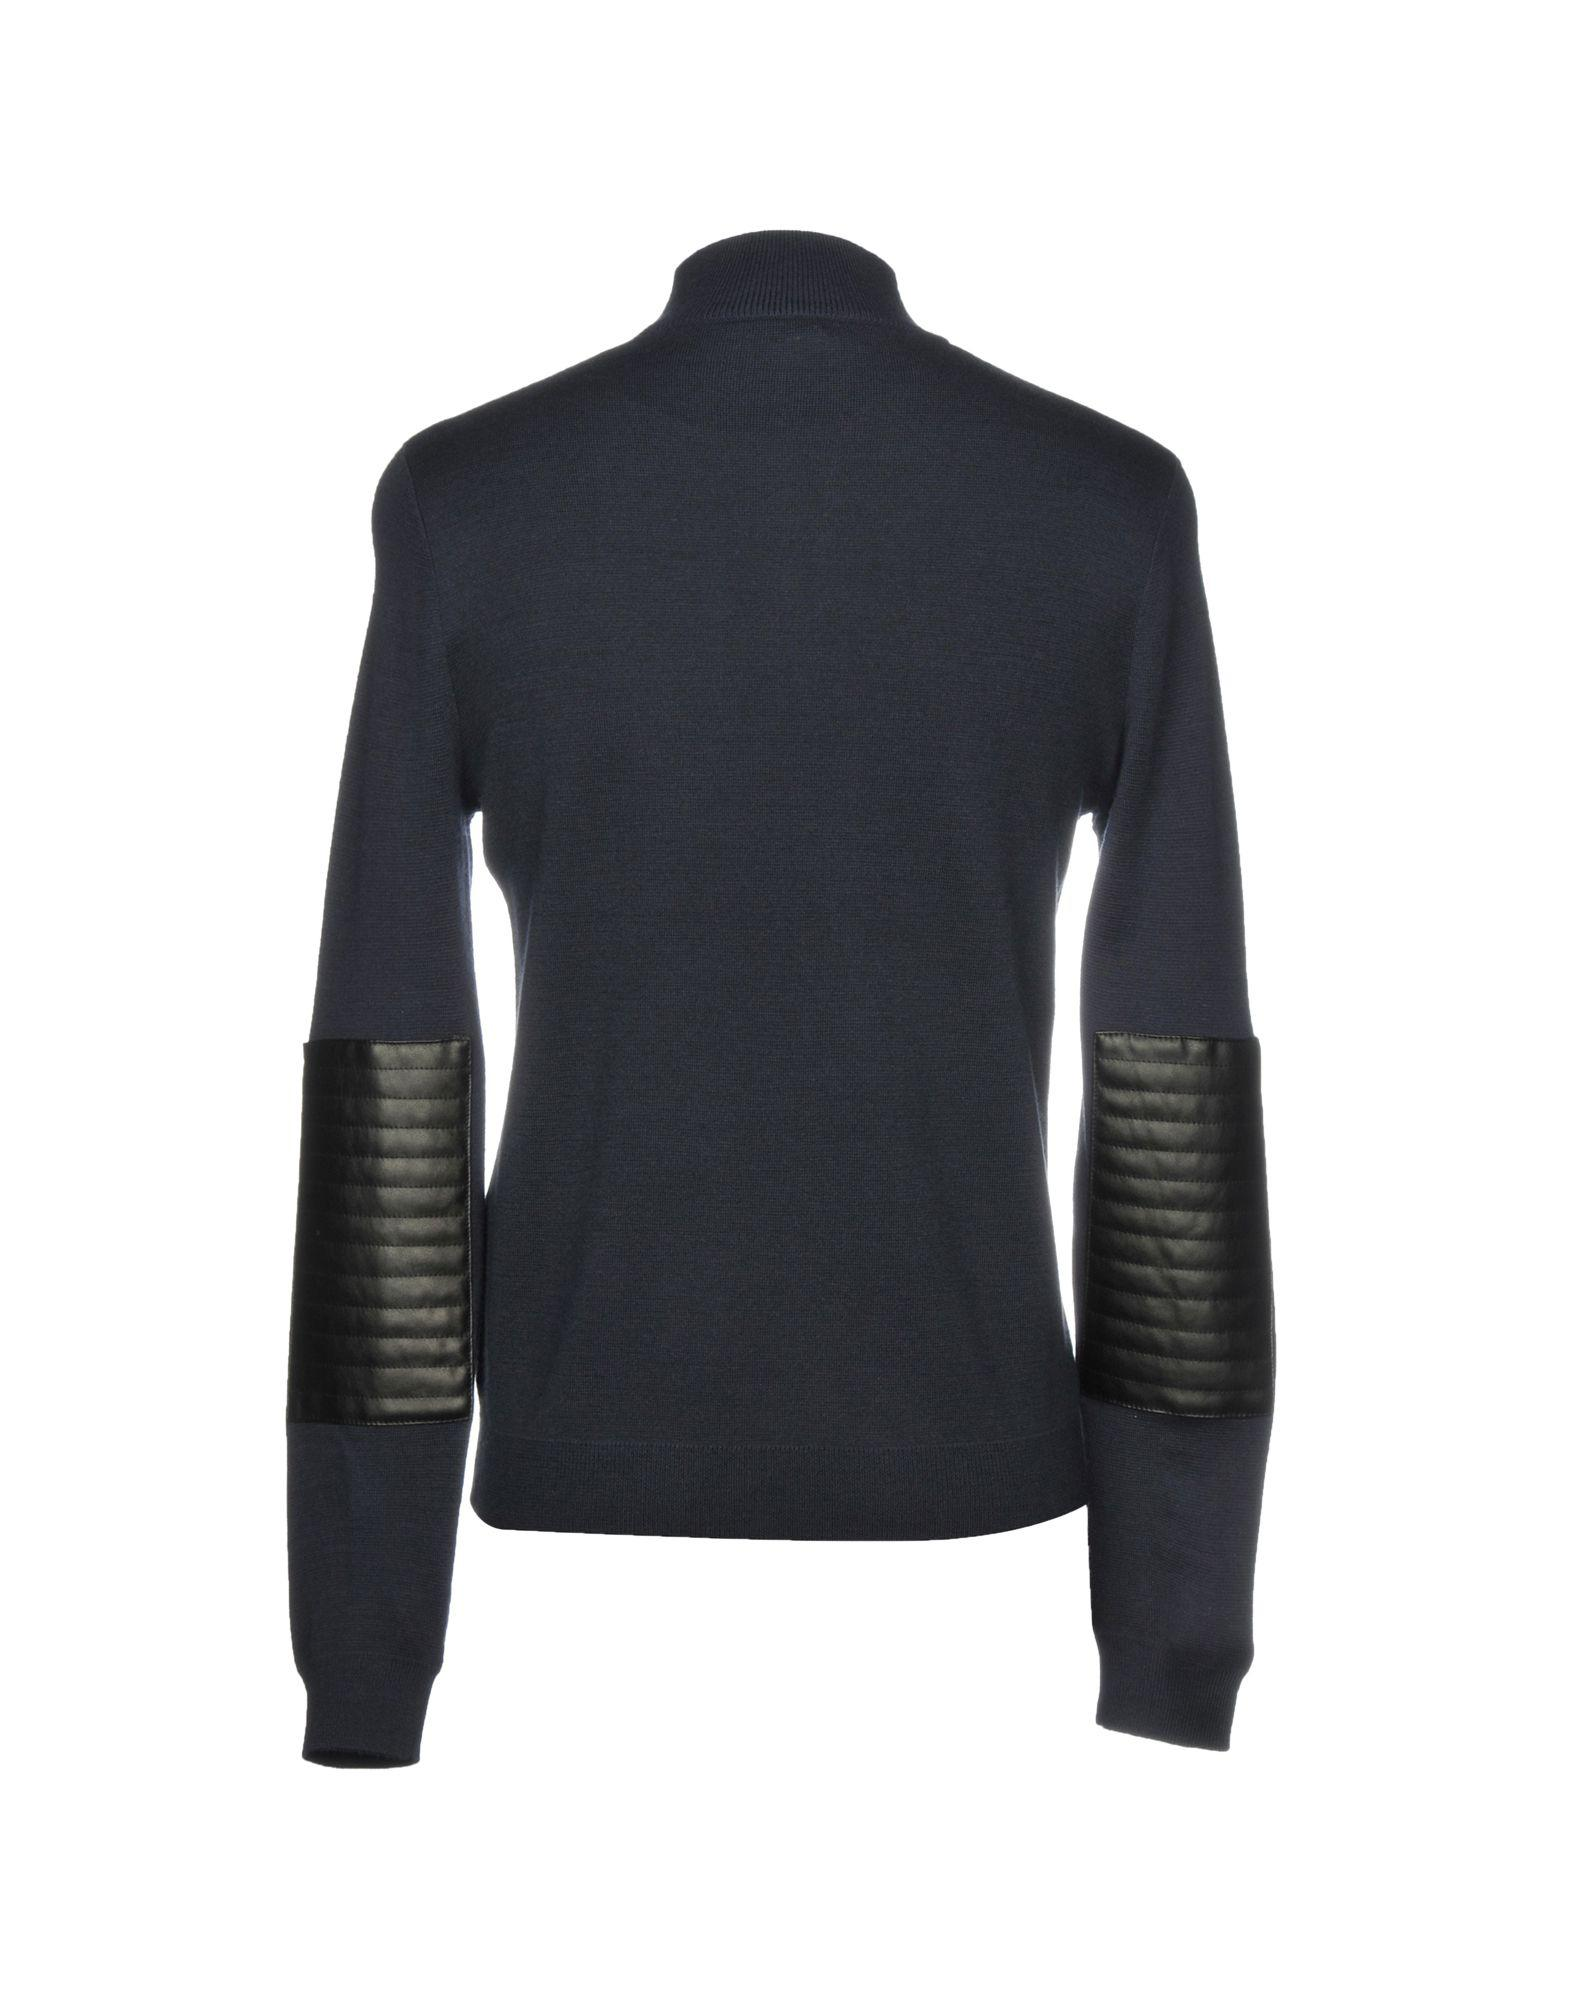 Versace Jeans Couture Synthetic Turtleneck in Dark Blue (Blue) for Men